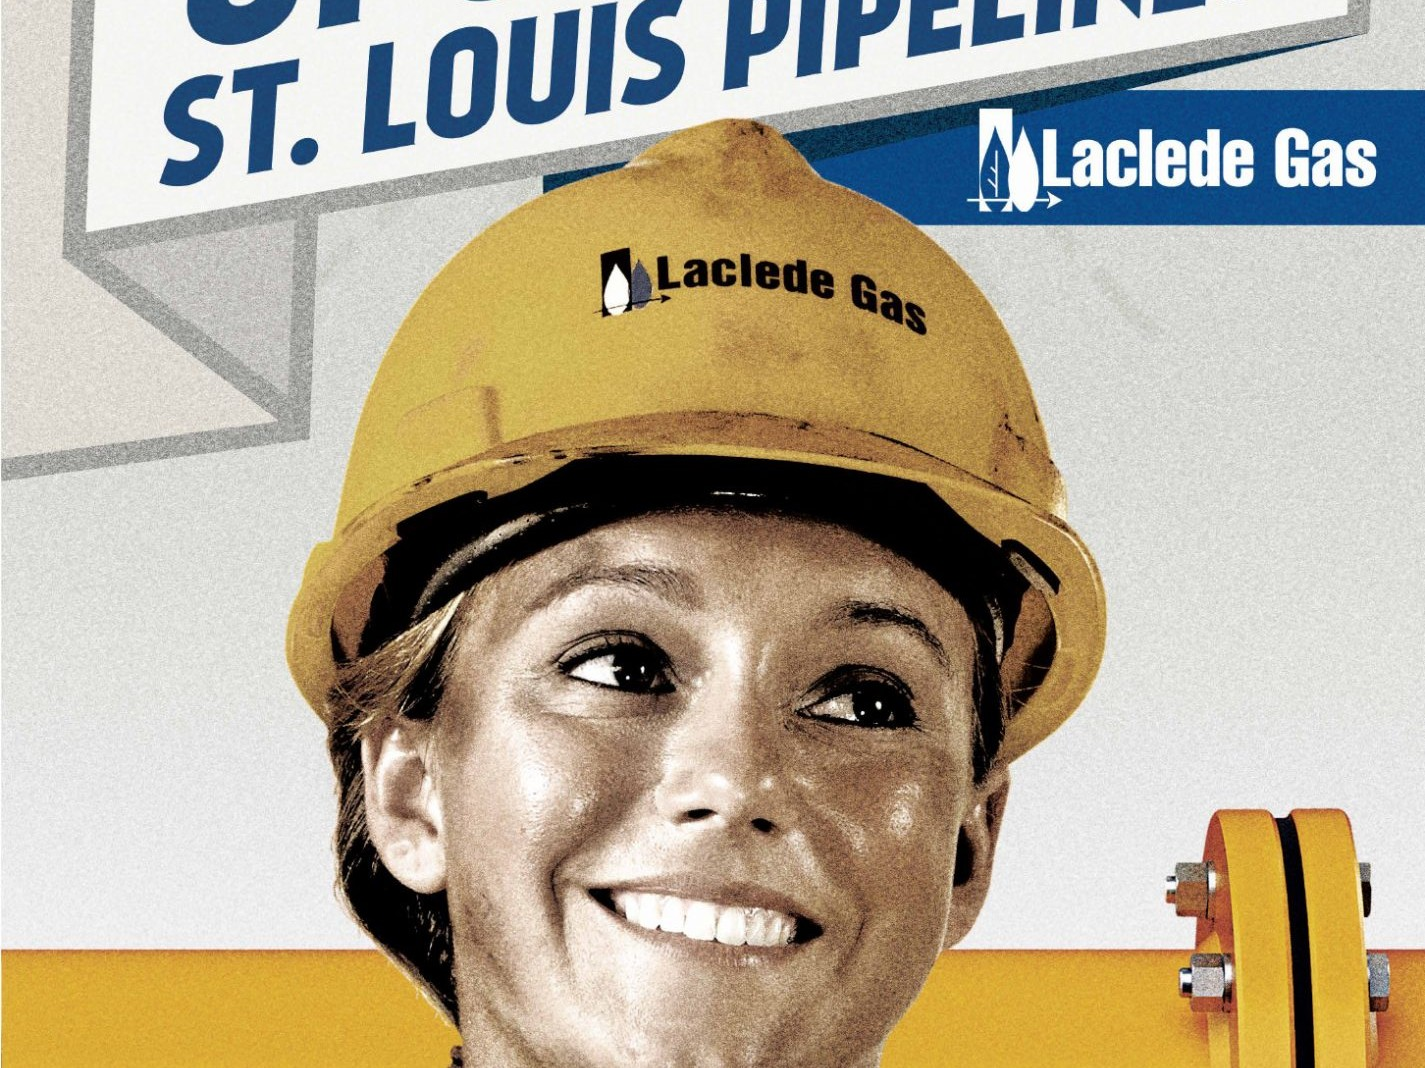 Laclede Gas Pipeline Upgrade Poster